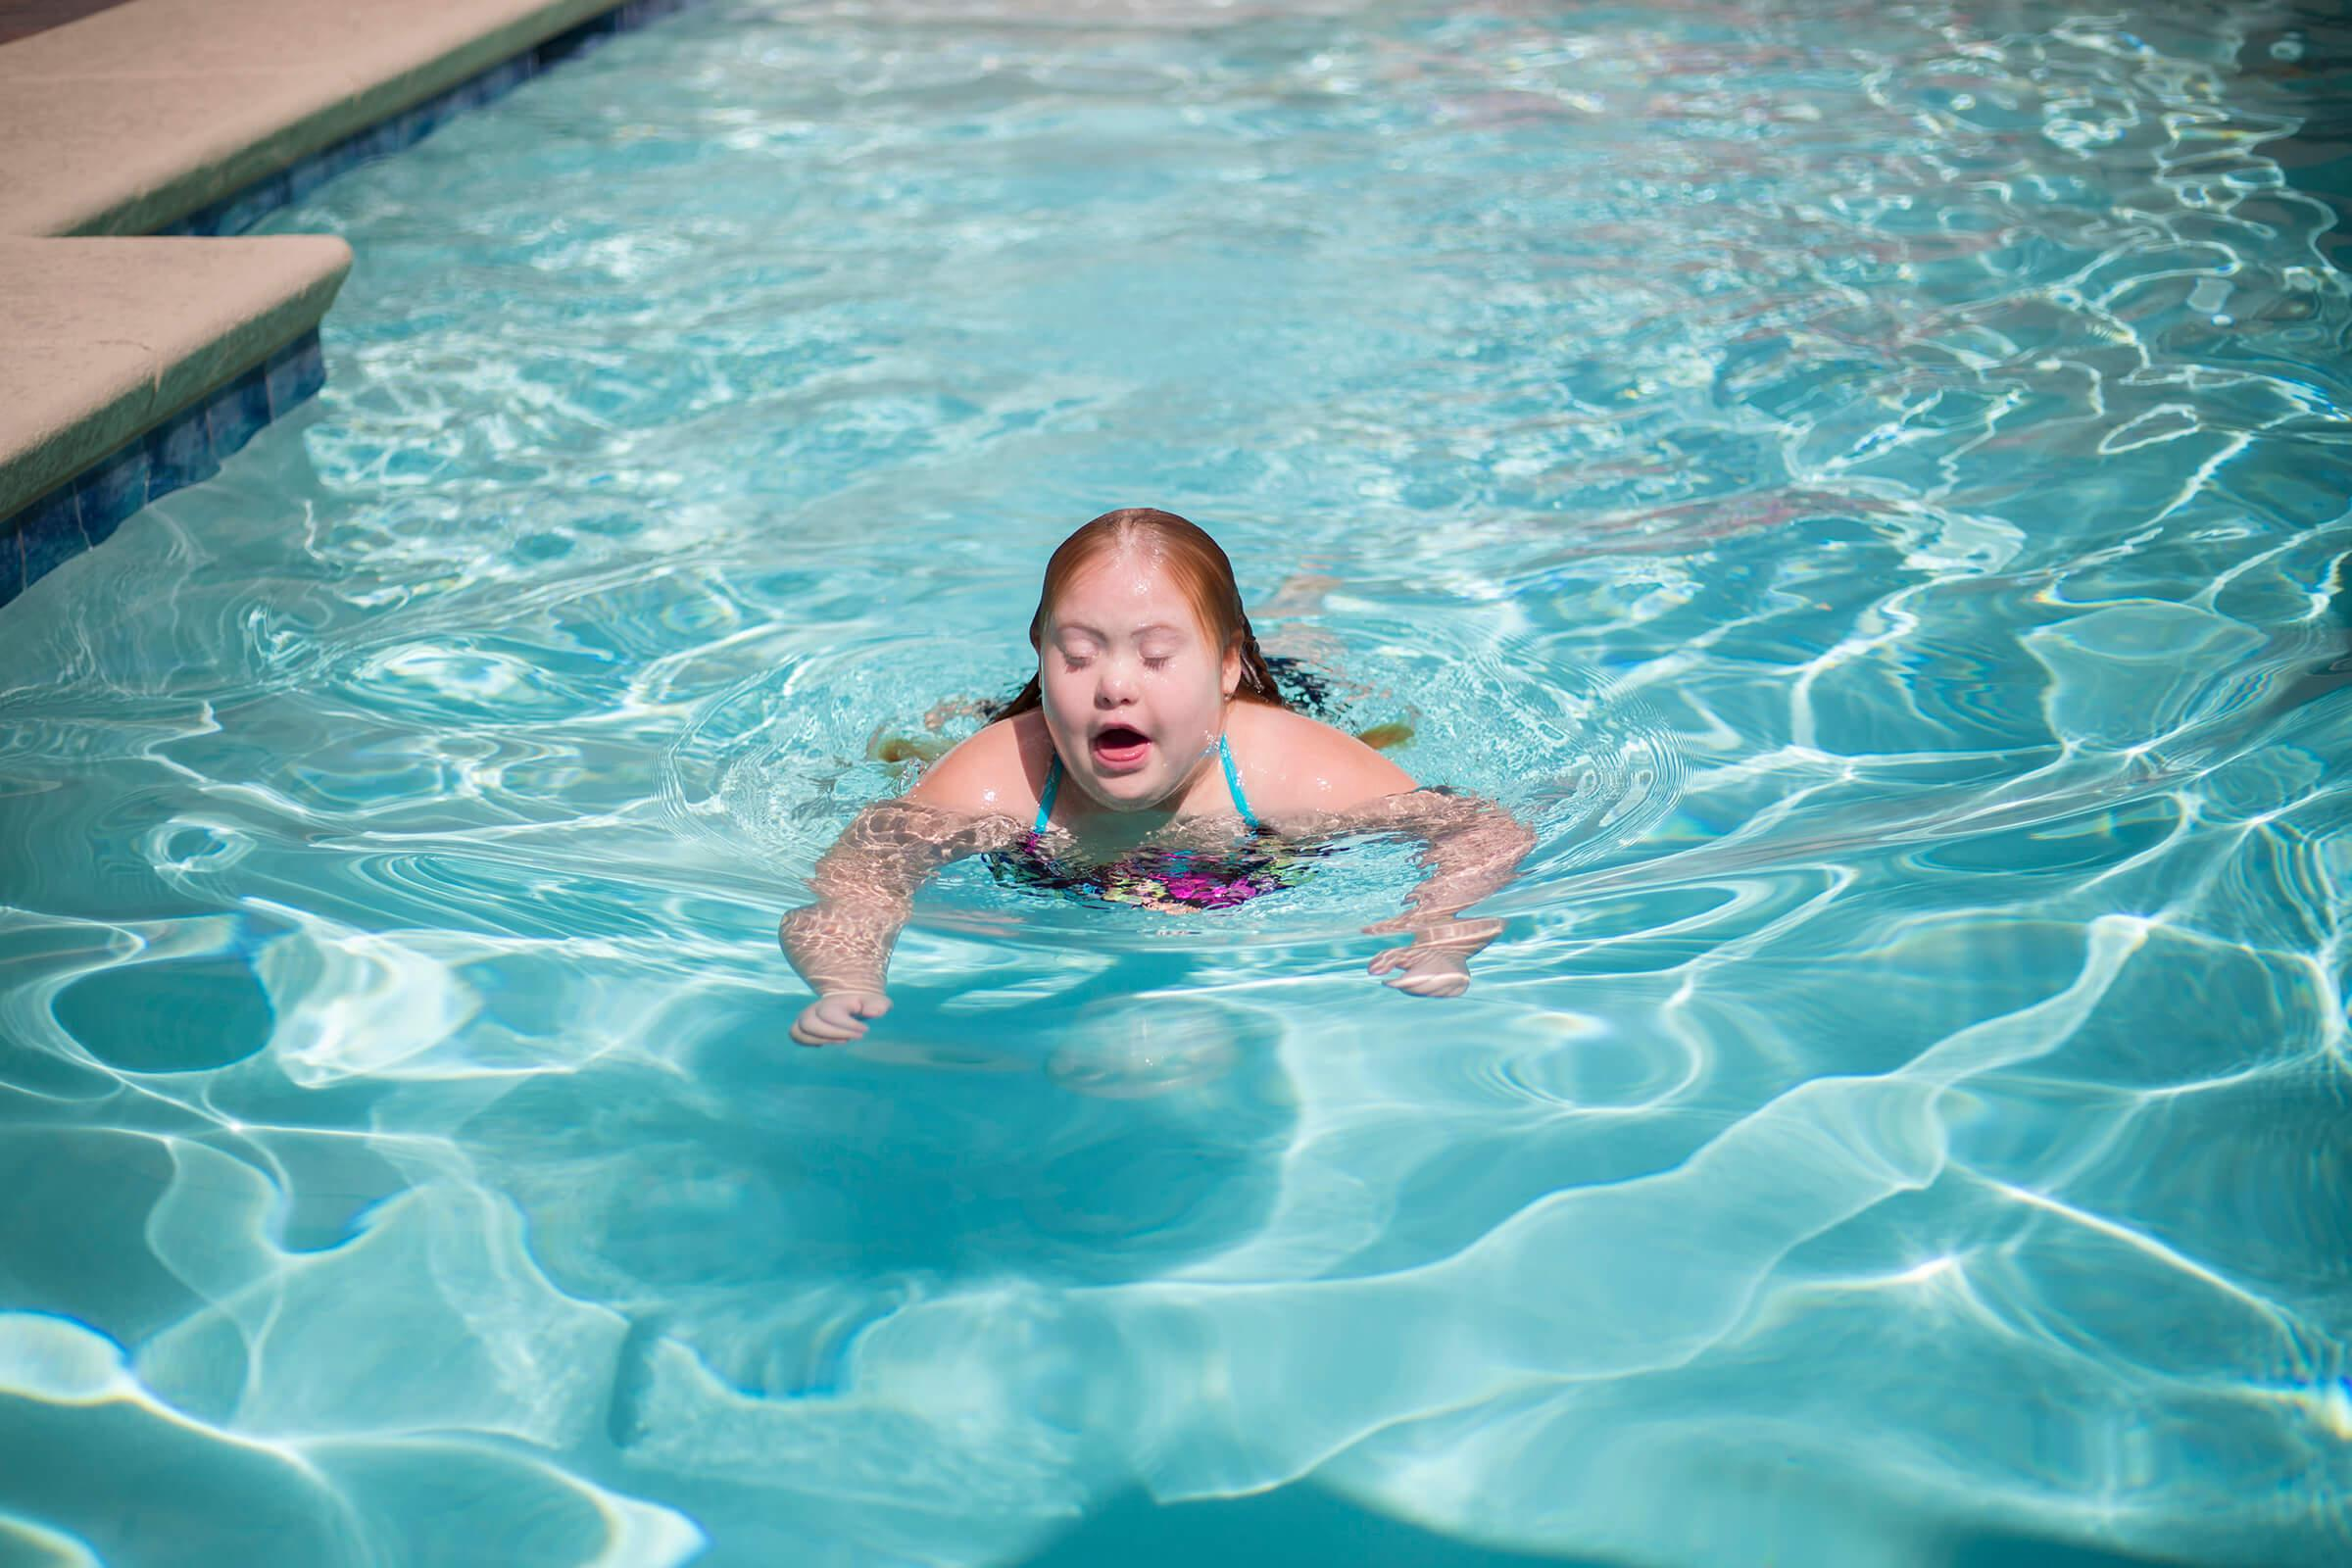 a young boy swimming in a pool of water